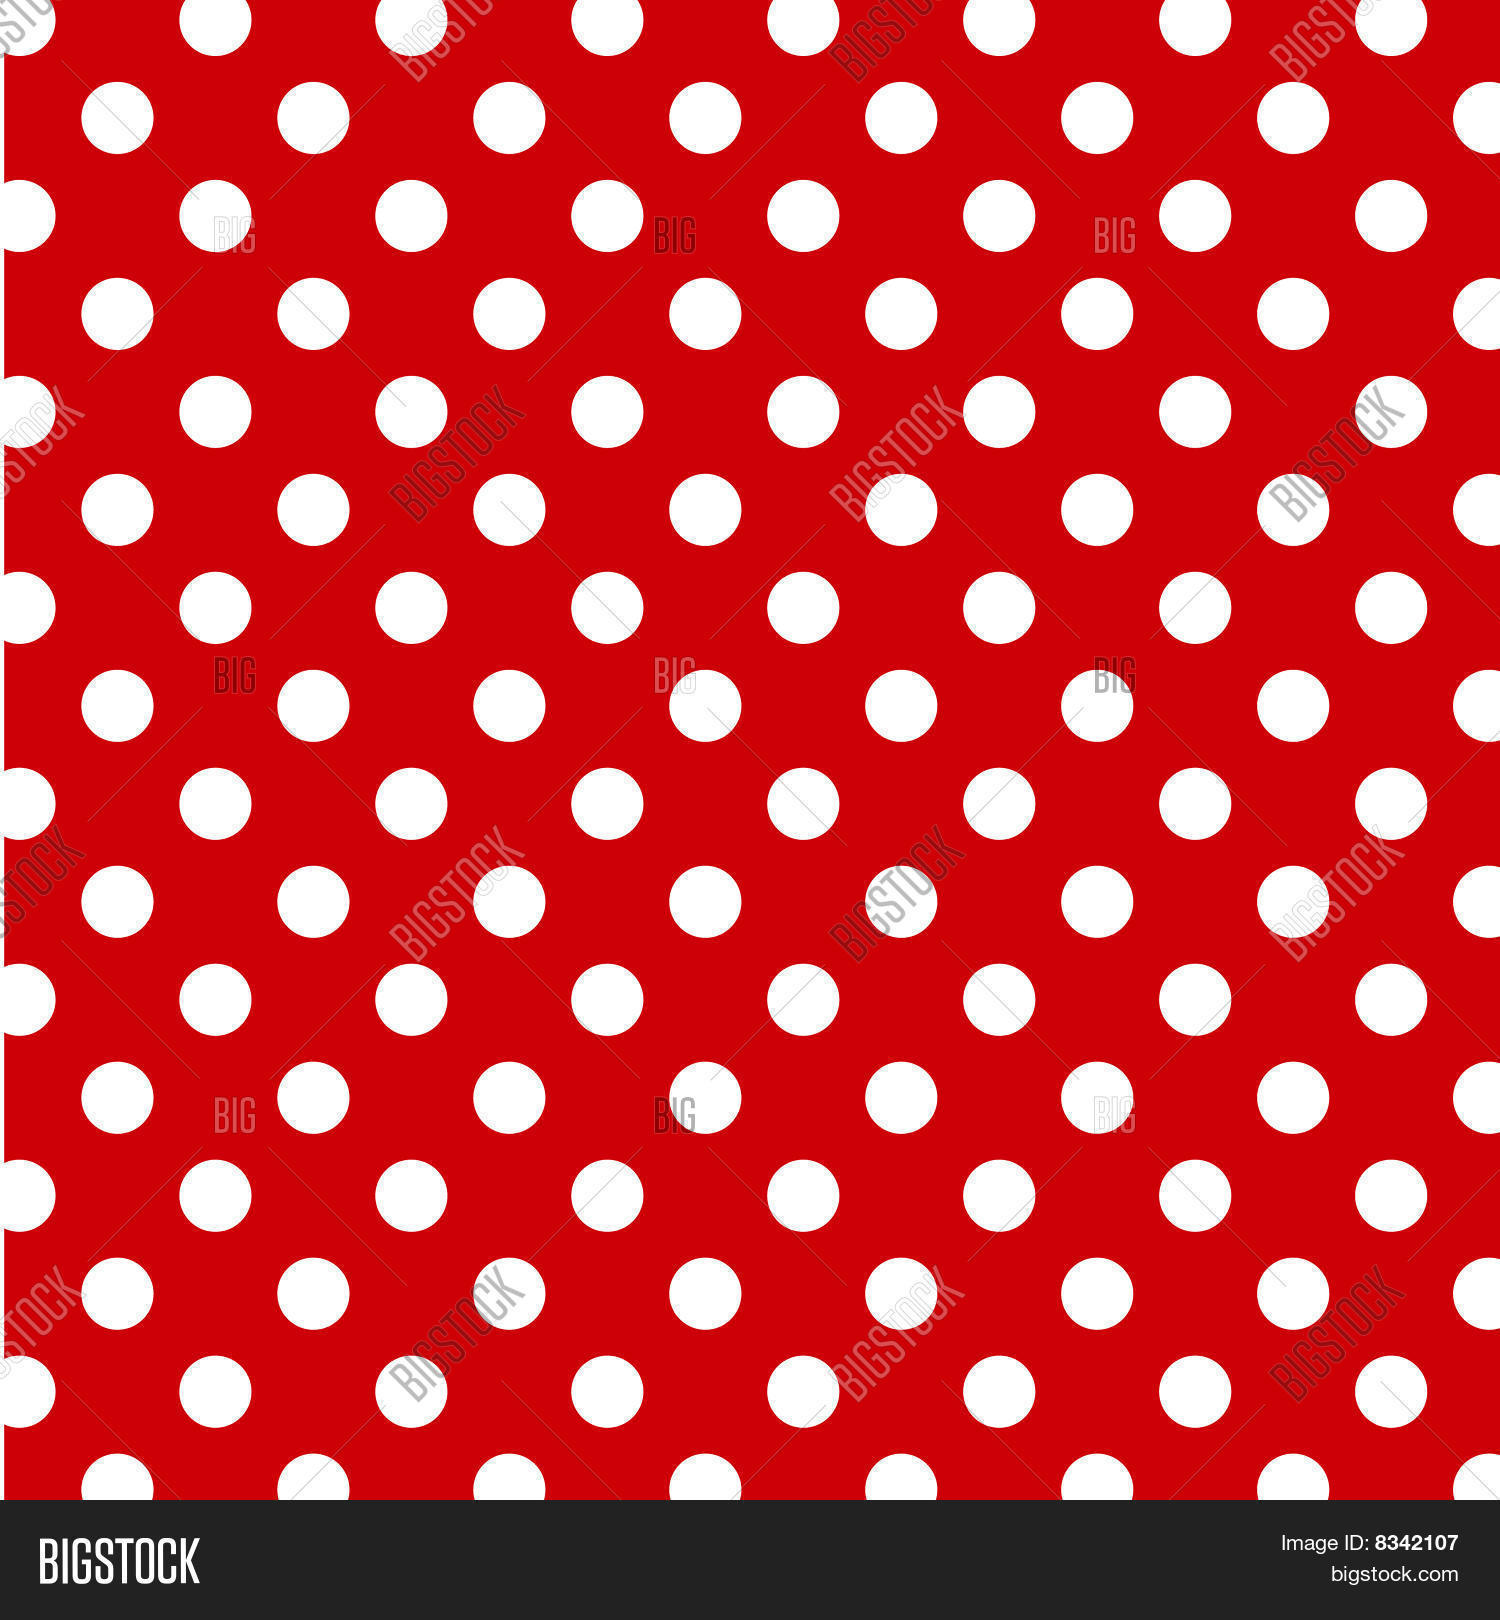 Seamless polka dot vector photo free trial bigstock for Red and white polka dot pattern